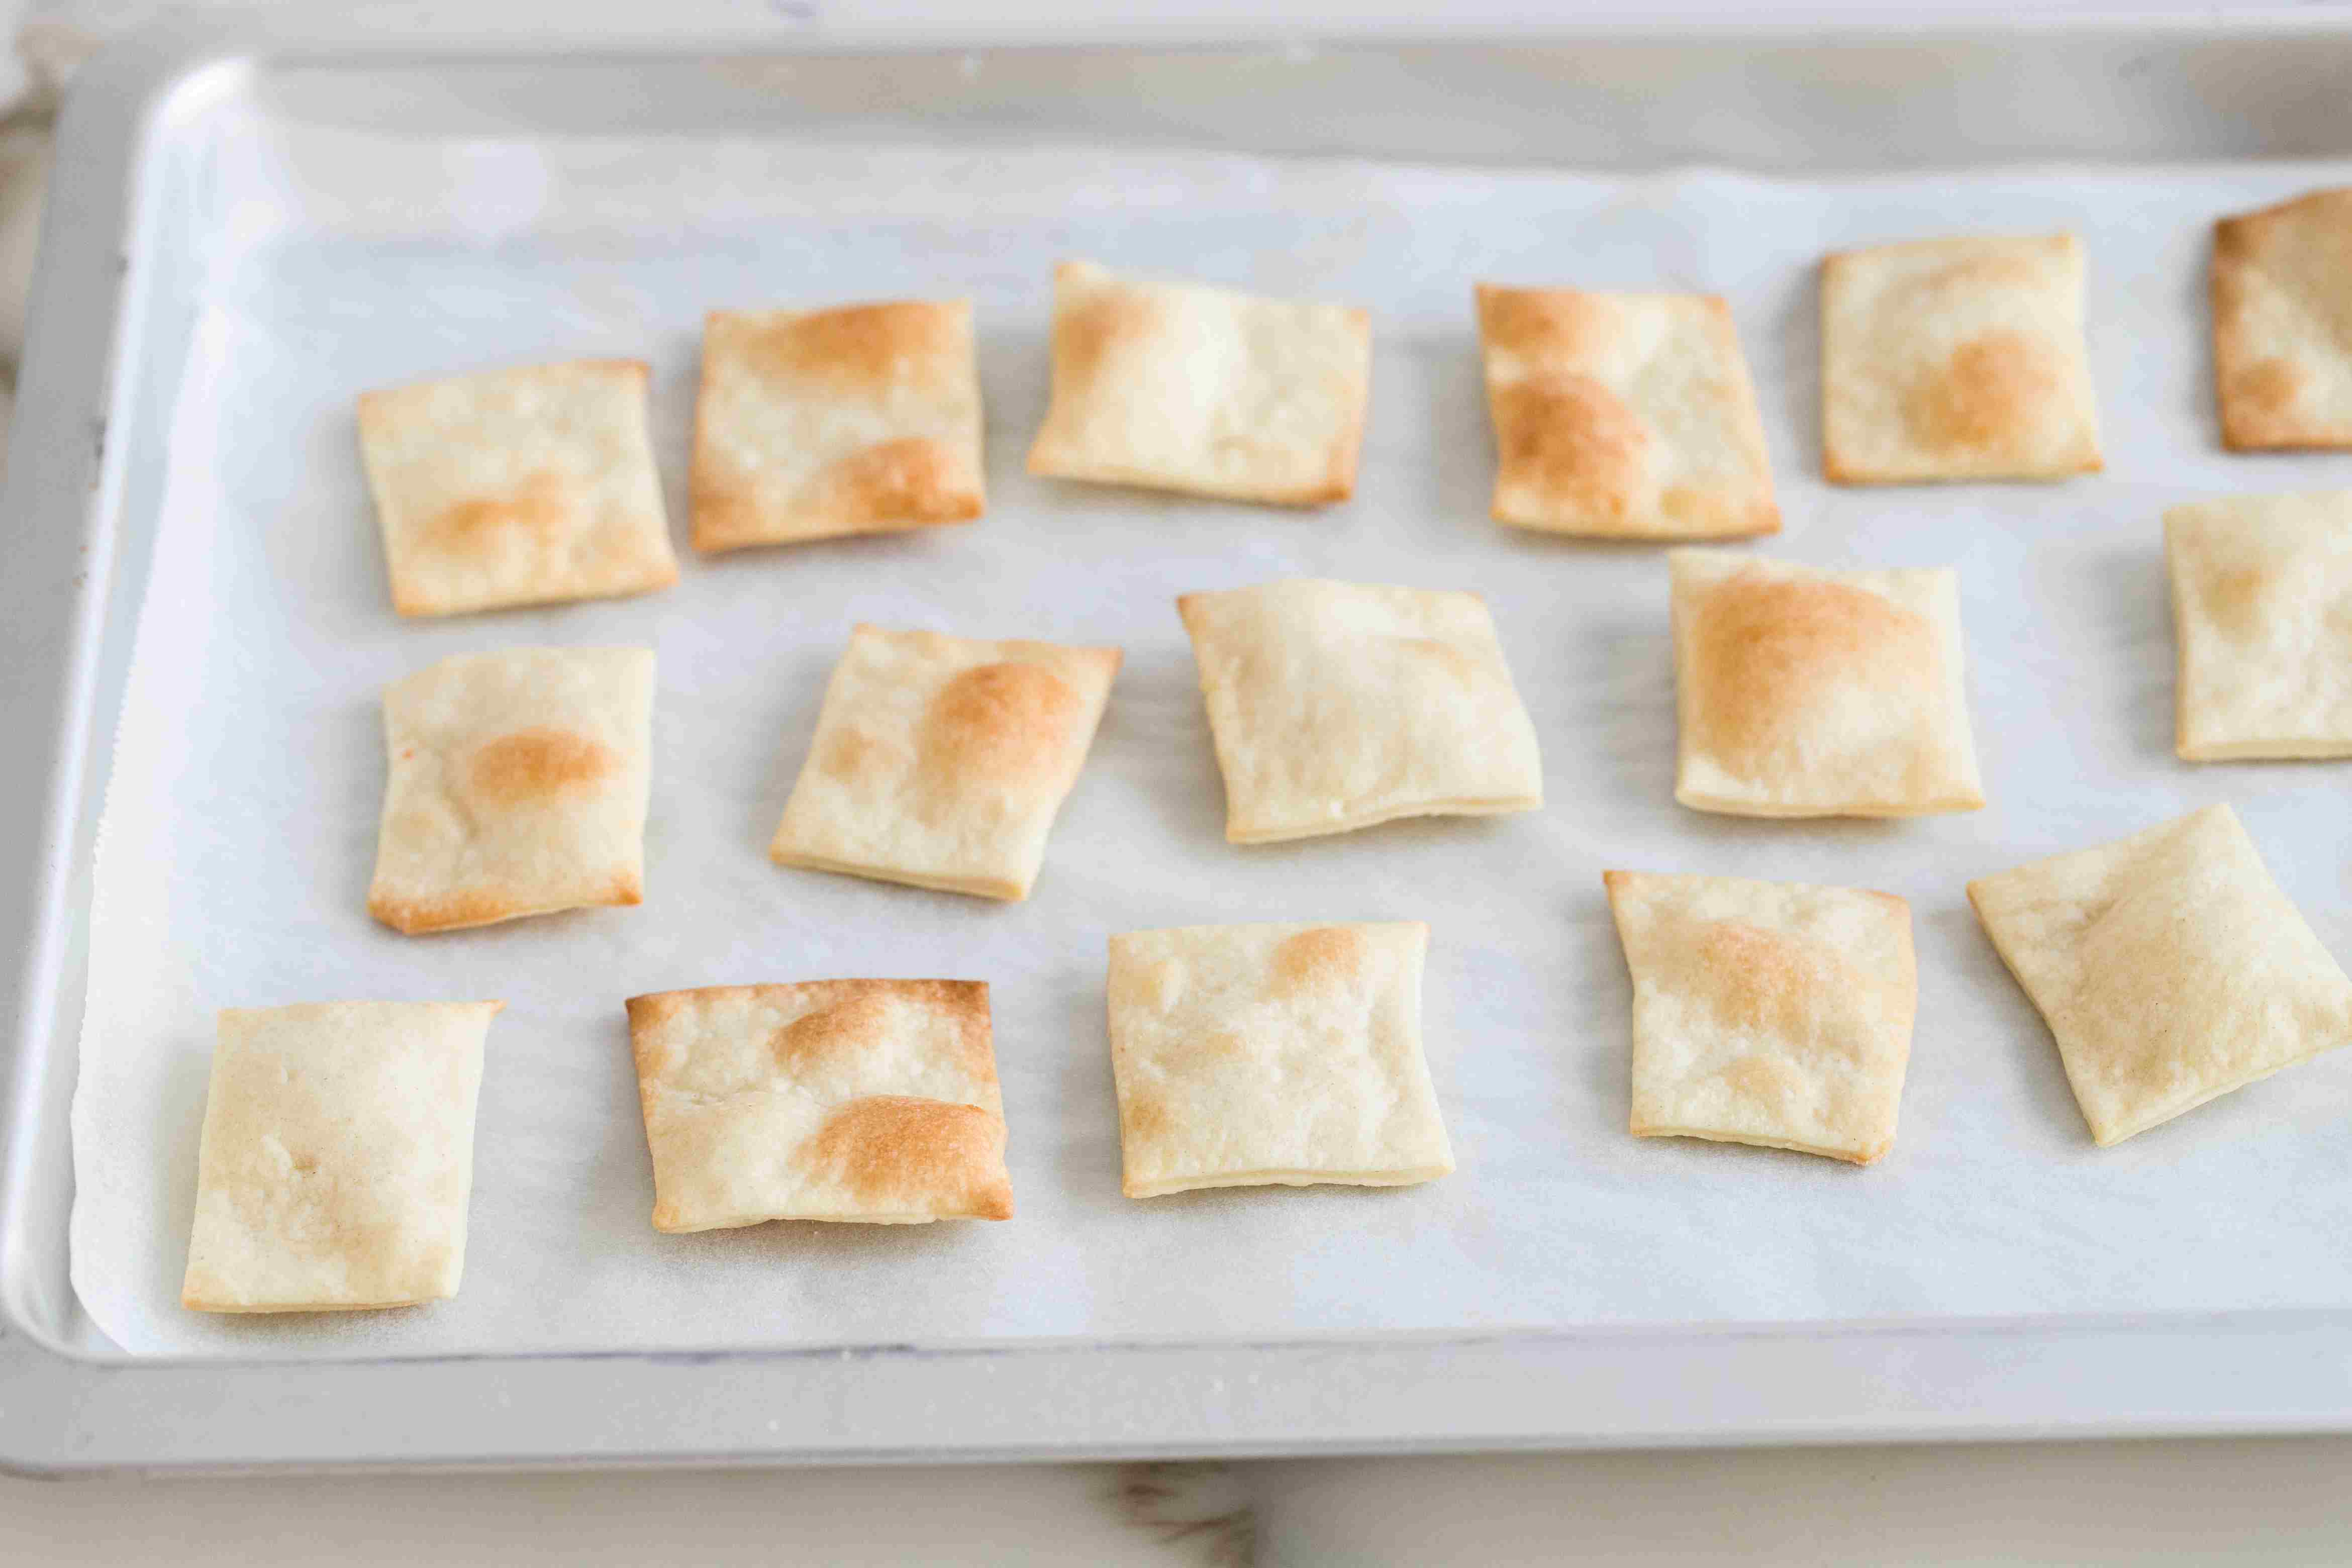 Baked crackers